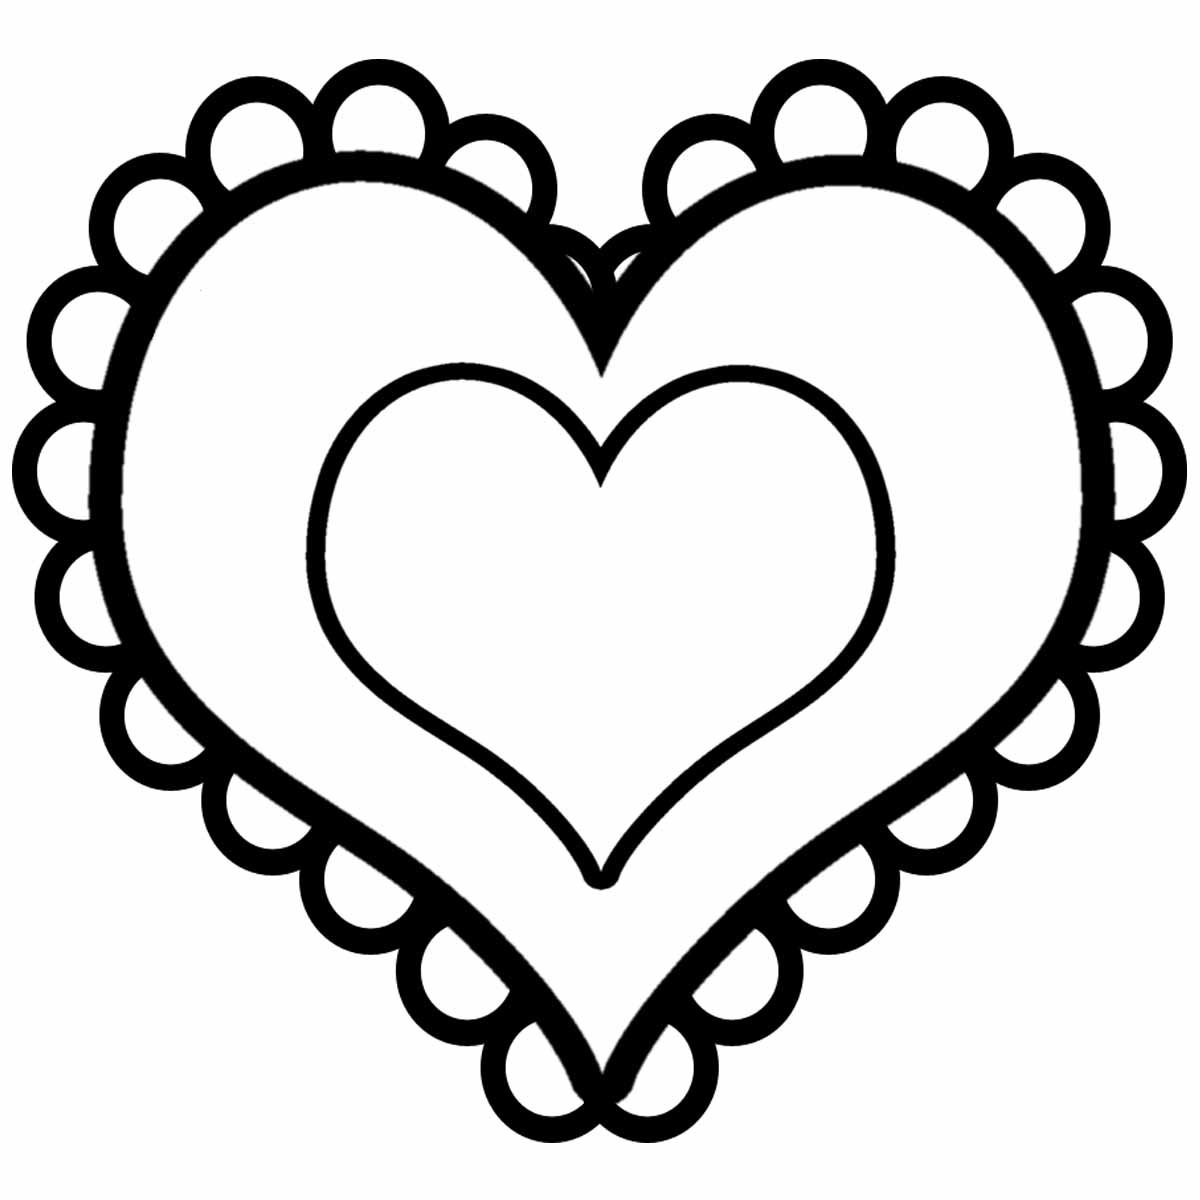 printable broken heart coloring pages free broken heart coloring pages download free clip art coloring printable pages heart broken